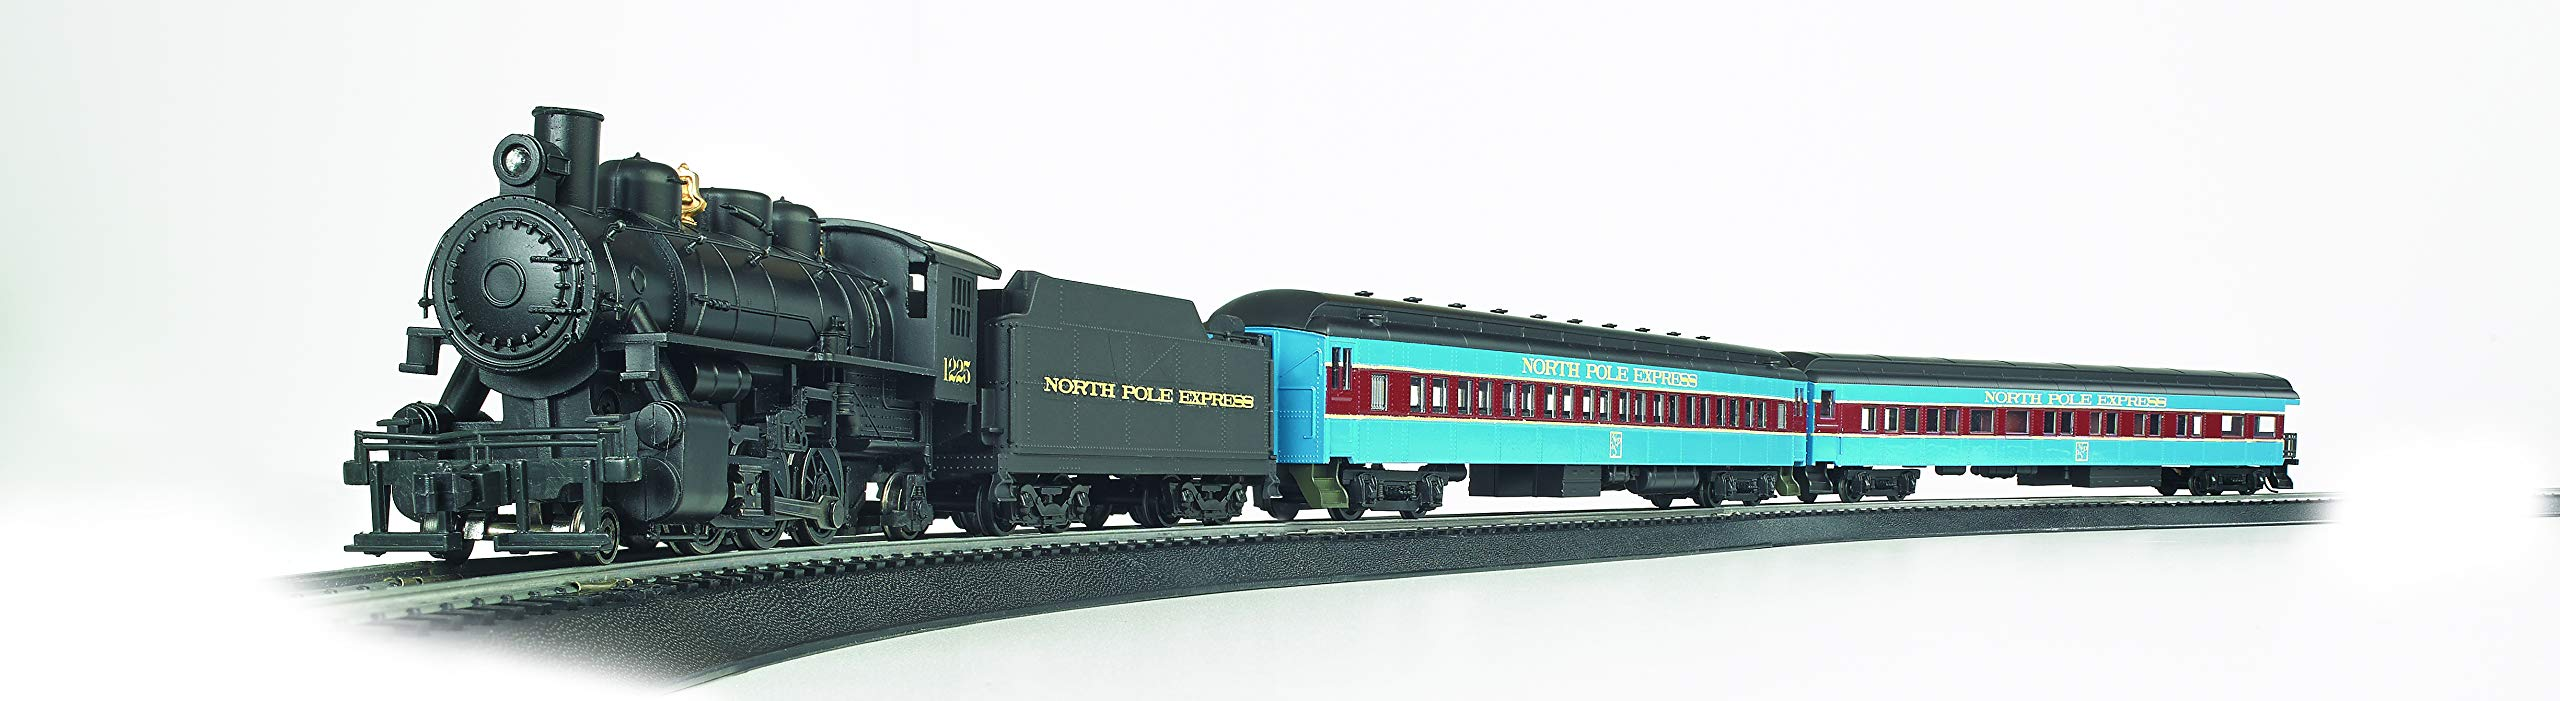 Bachmann Trains - North Pole Express Ready To Run Electric Train Set - HO Scale